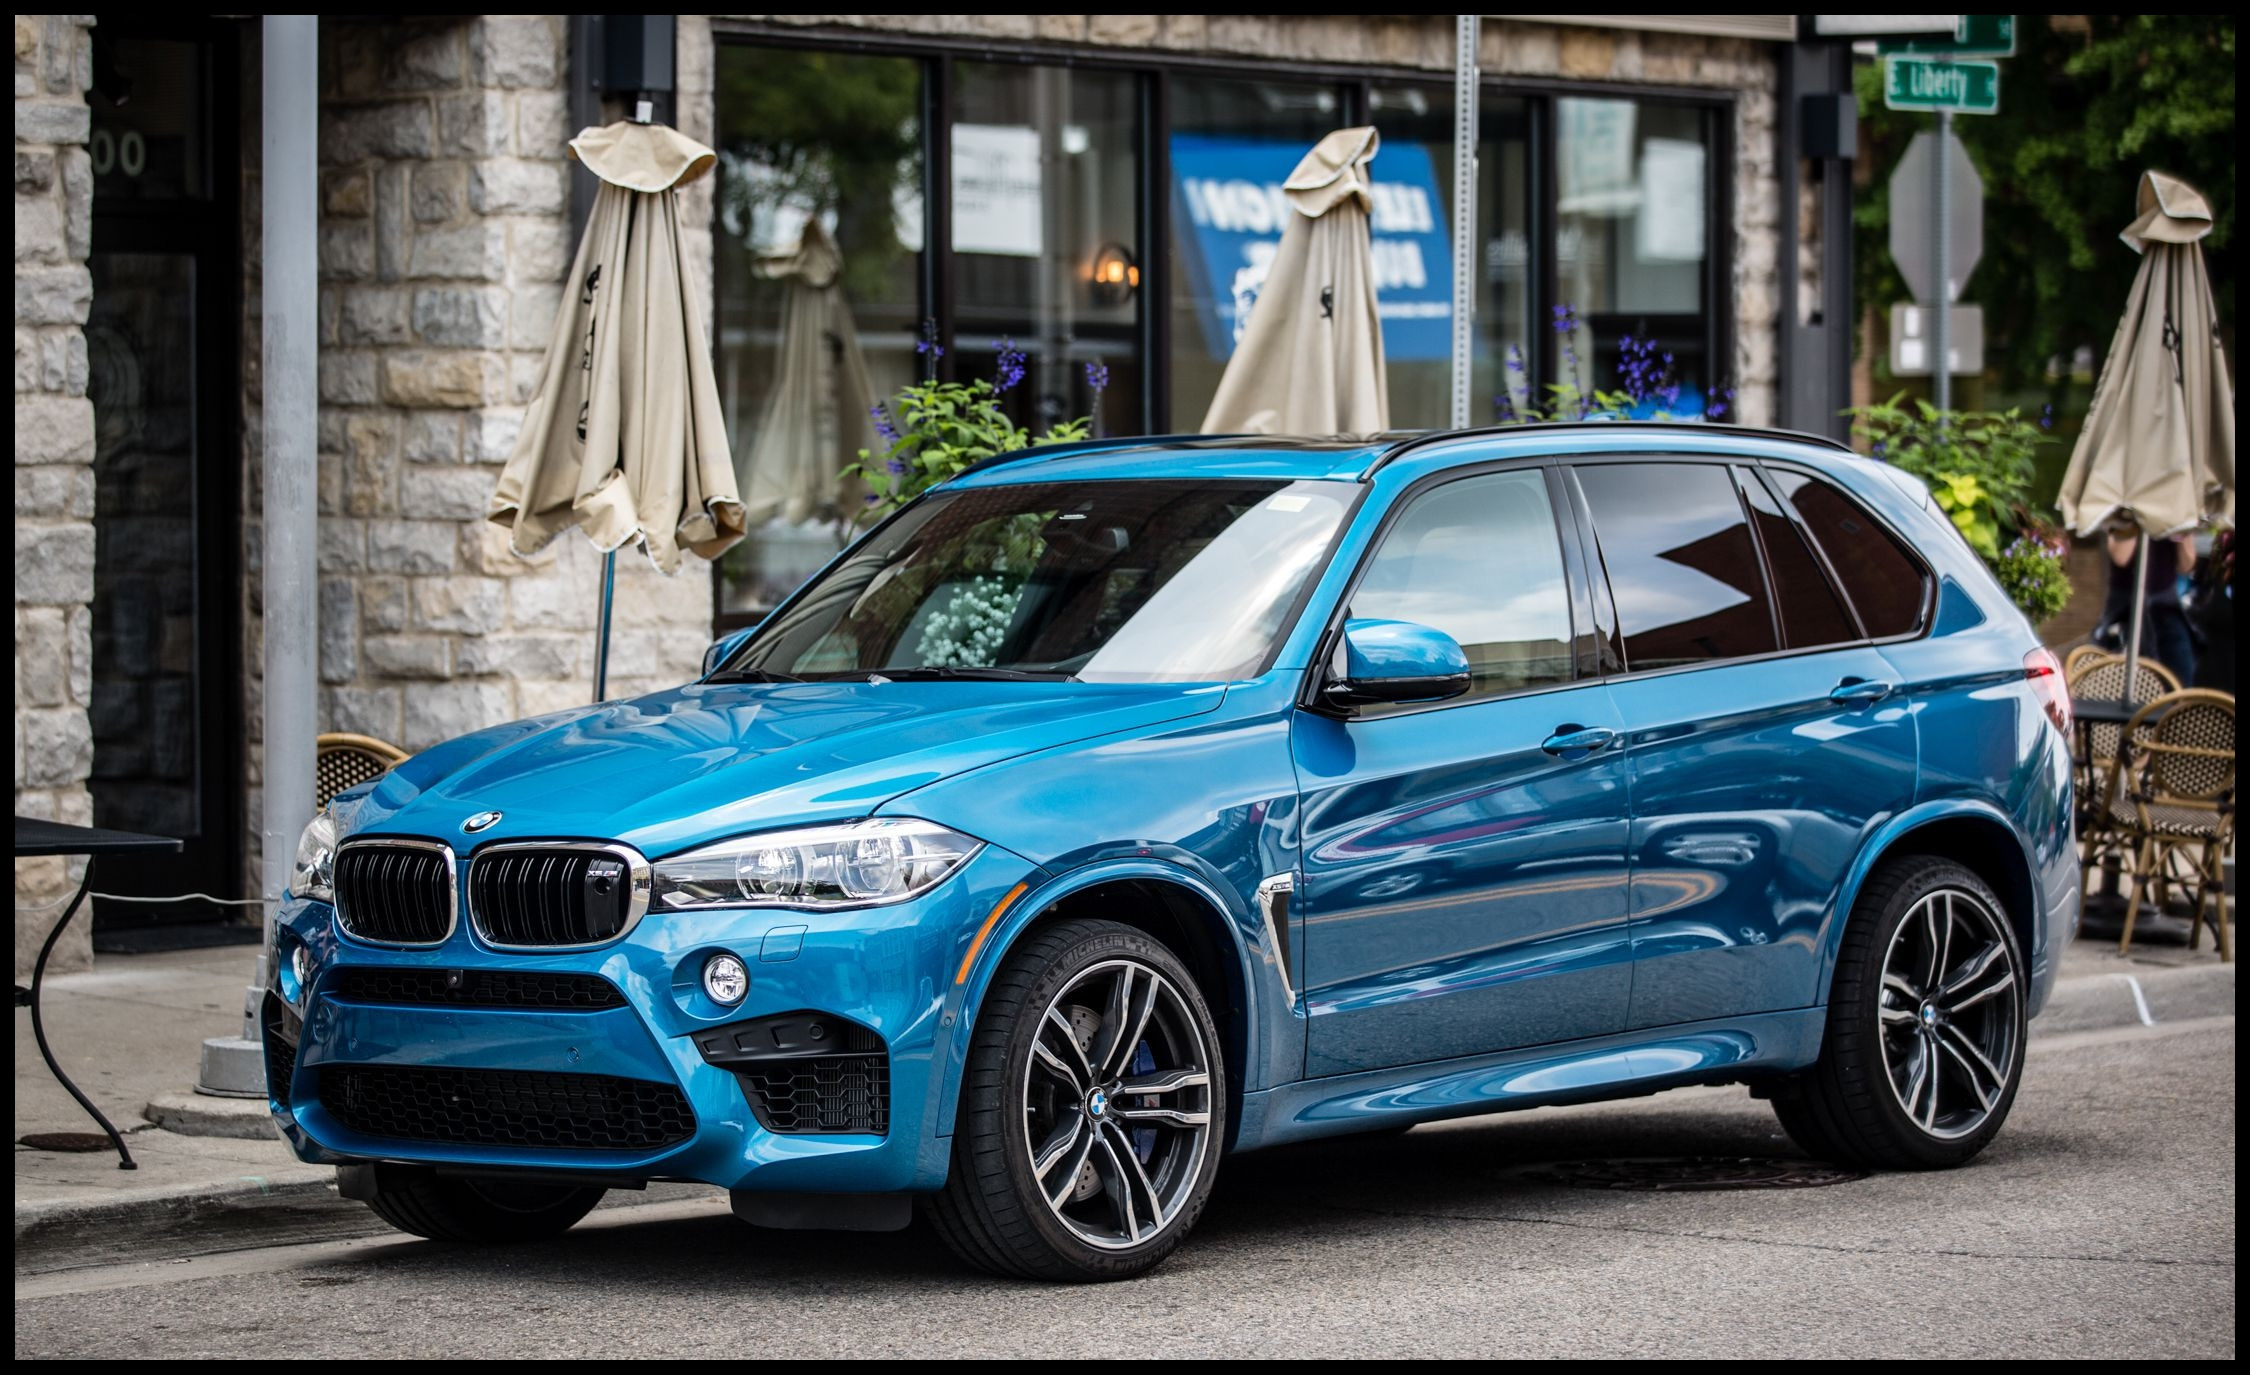 2017 Bmw X5 50i 0 60 Lovely Bmw X5 M Reviews Bmw X5 M Price